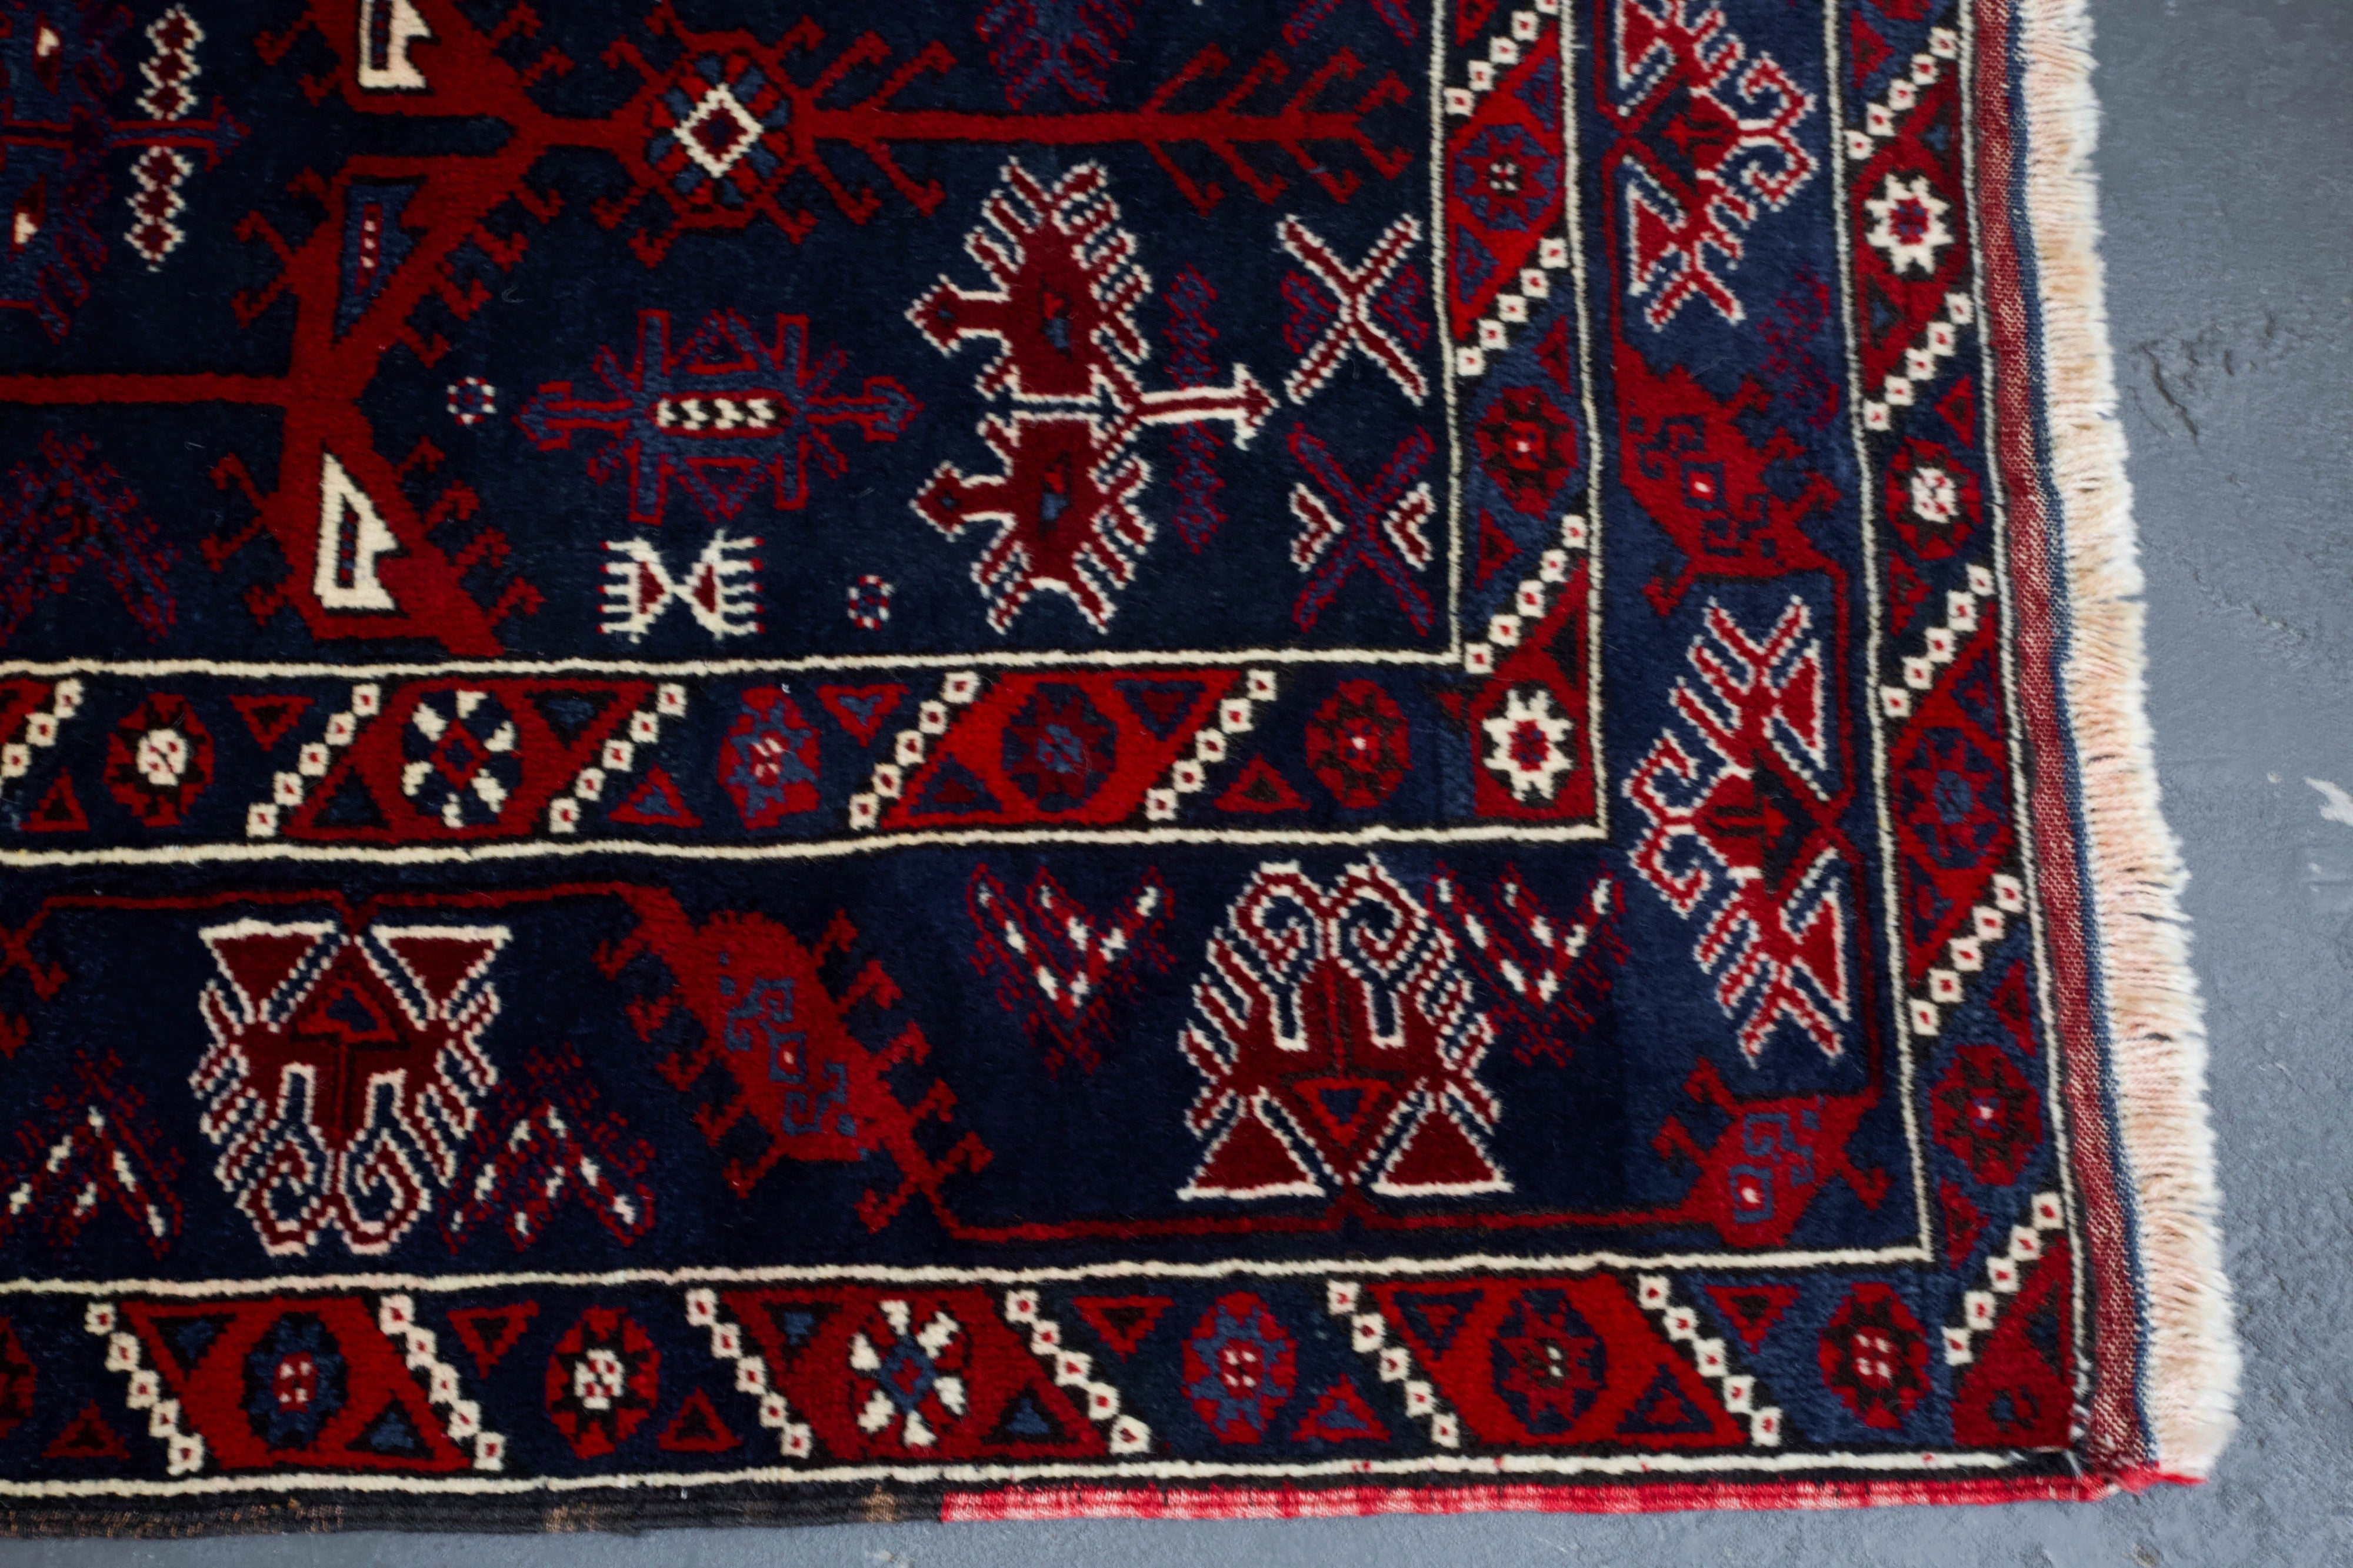 old rug, antique rug, Turkish rug, Portland, Oregon, rug store, rug shop, local shop, bright colors, wild shaman, area rug, red rug, bold color, burgundy, dark red, rug shop, portland, Anatolian rug